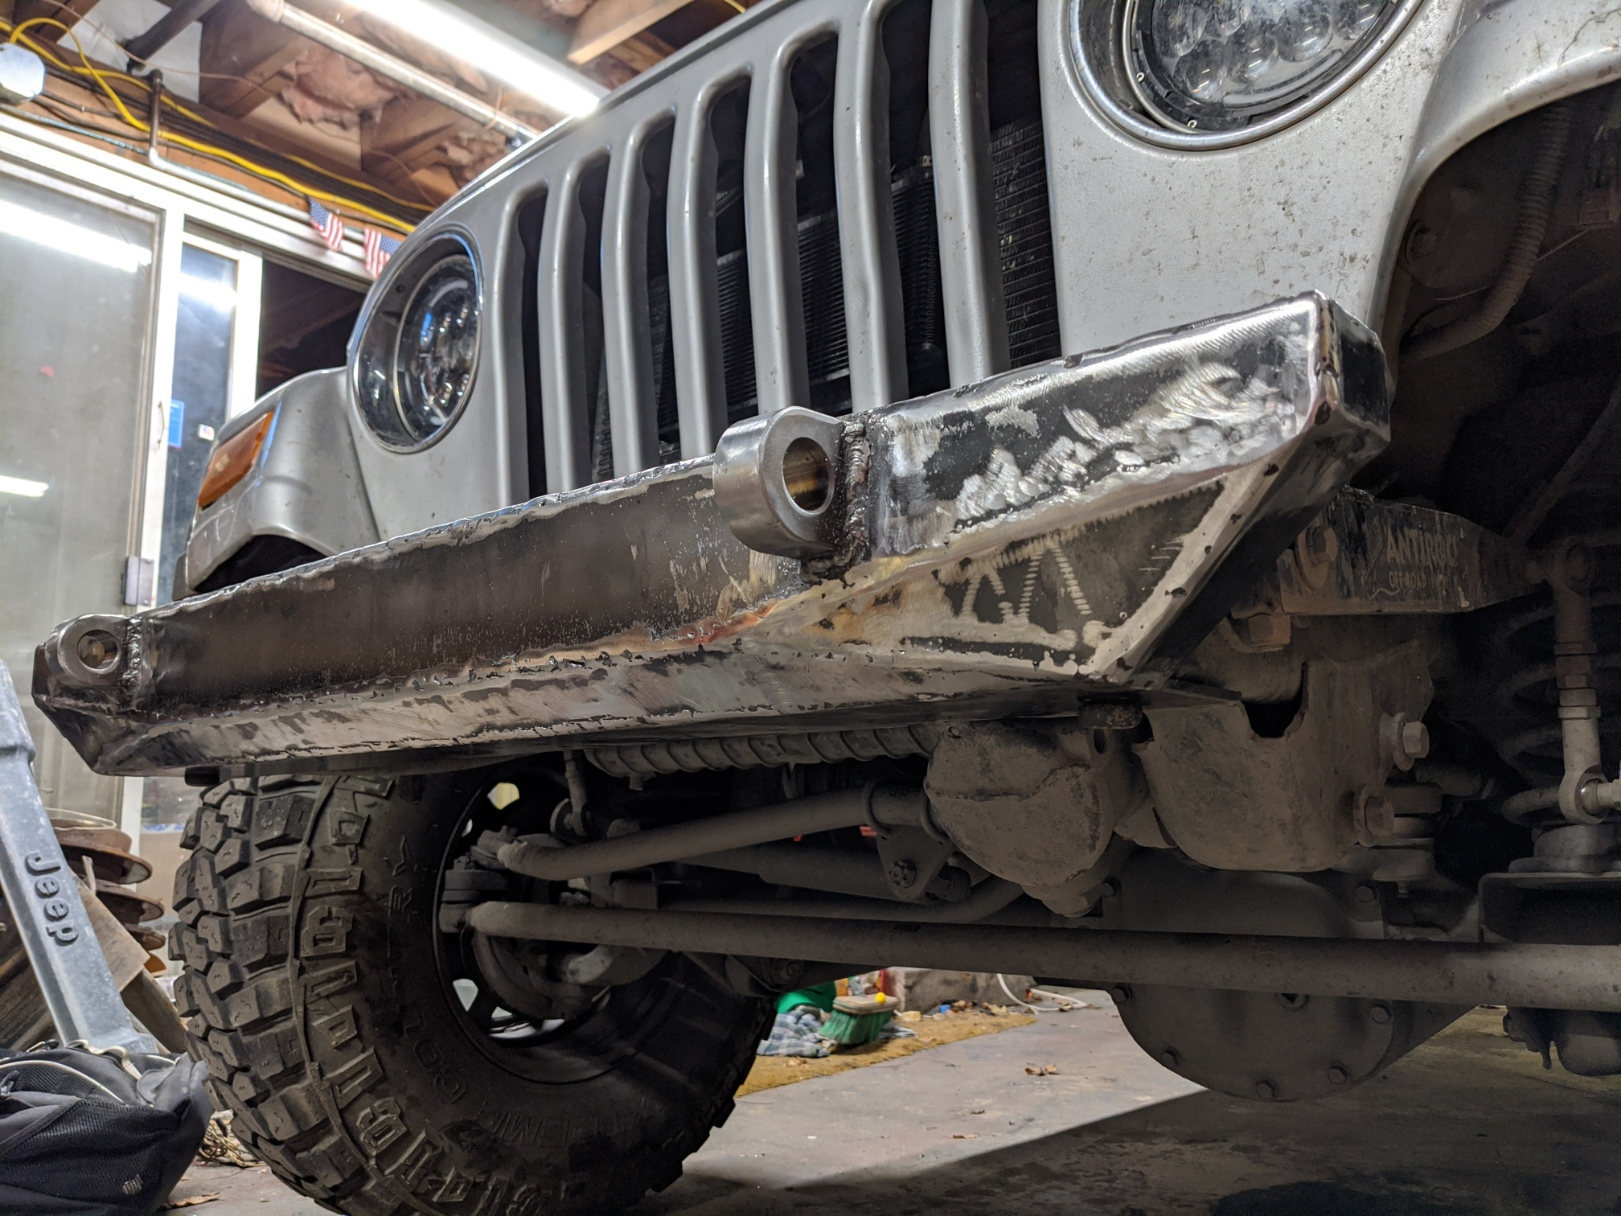 Building a home-fab TJ bumper with recovery points, and a winch plate. Get out there and fab! Part 2